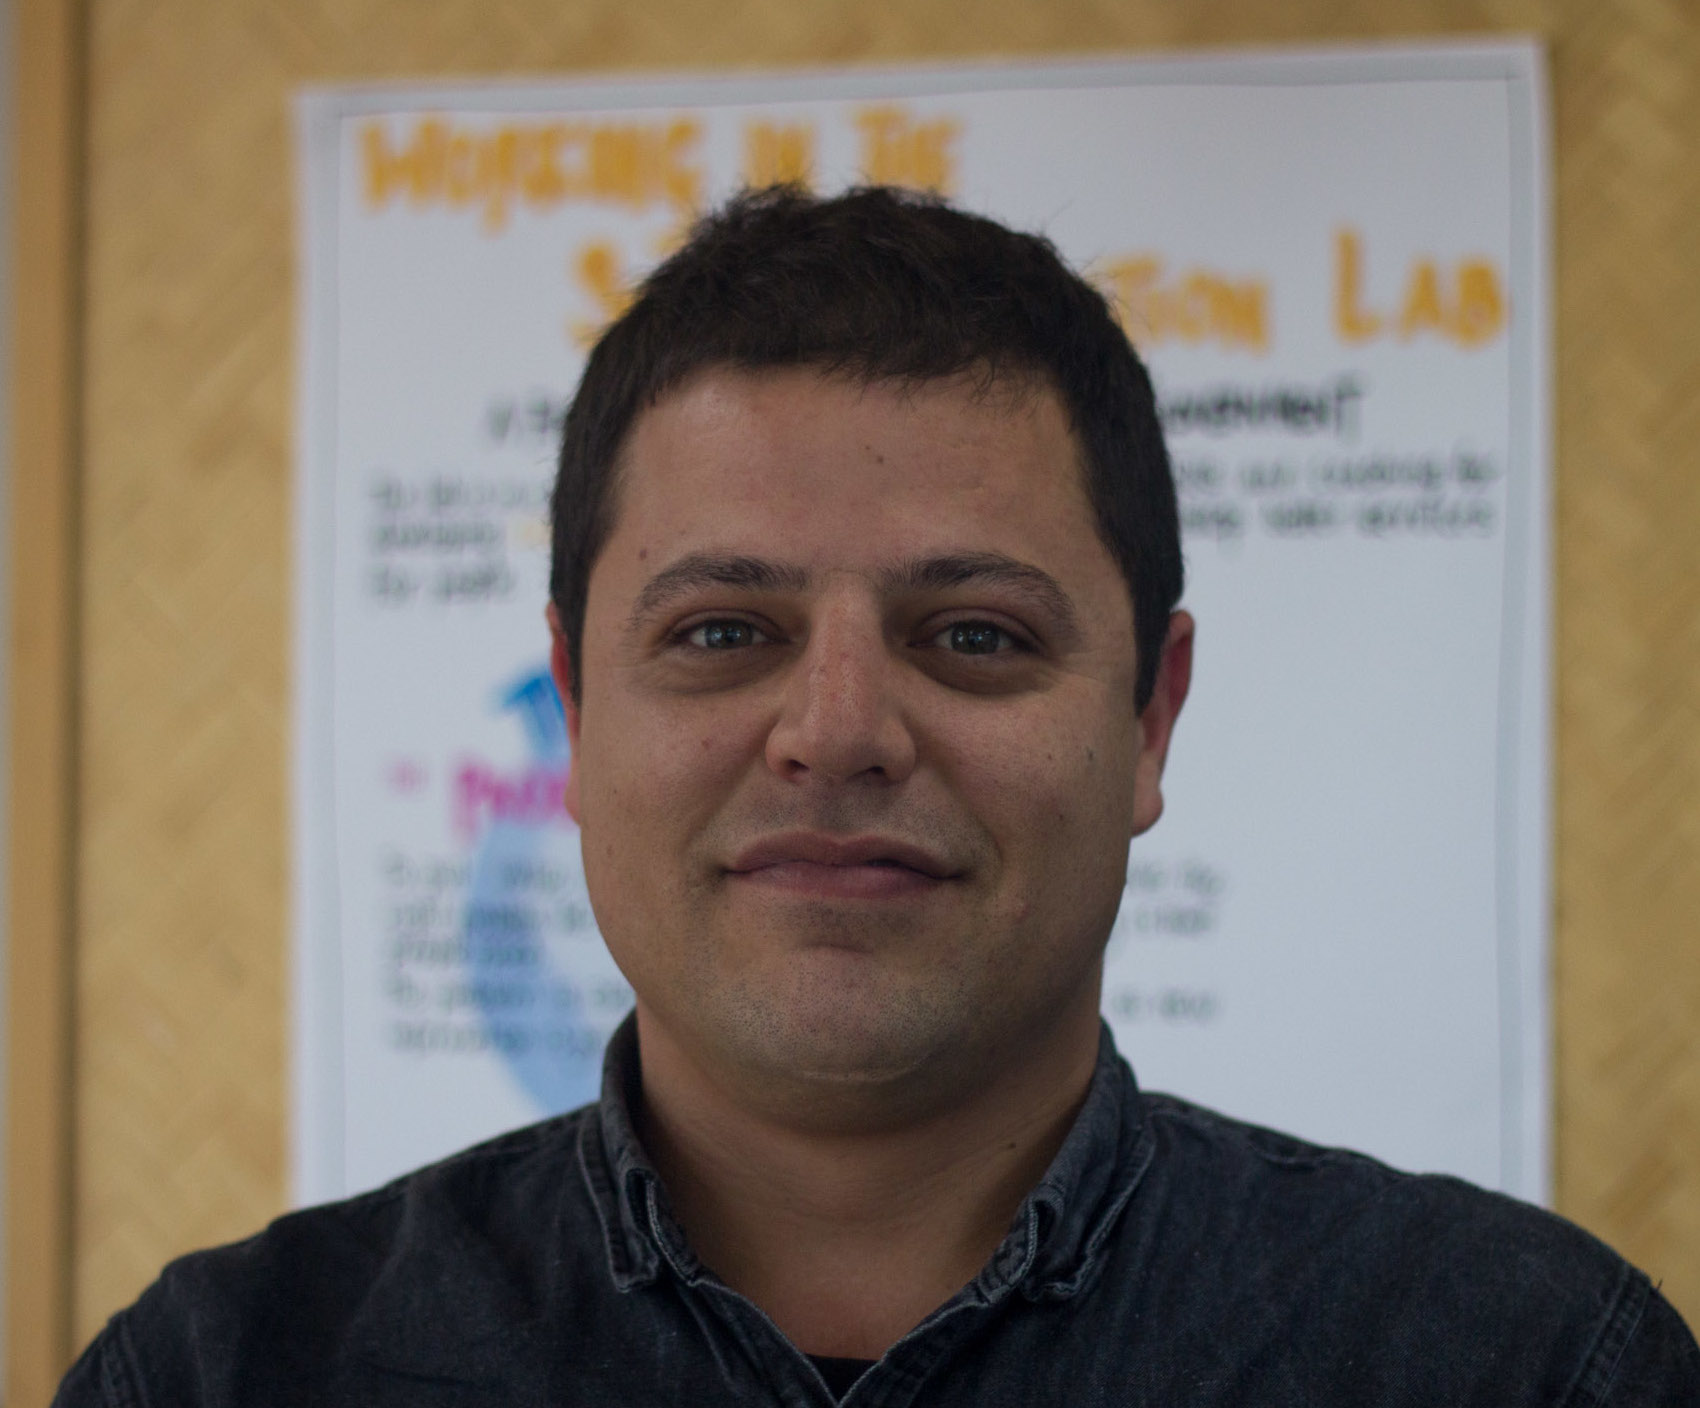 Team member named Tiopira Piripi